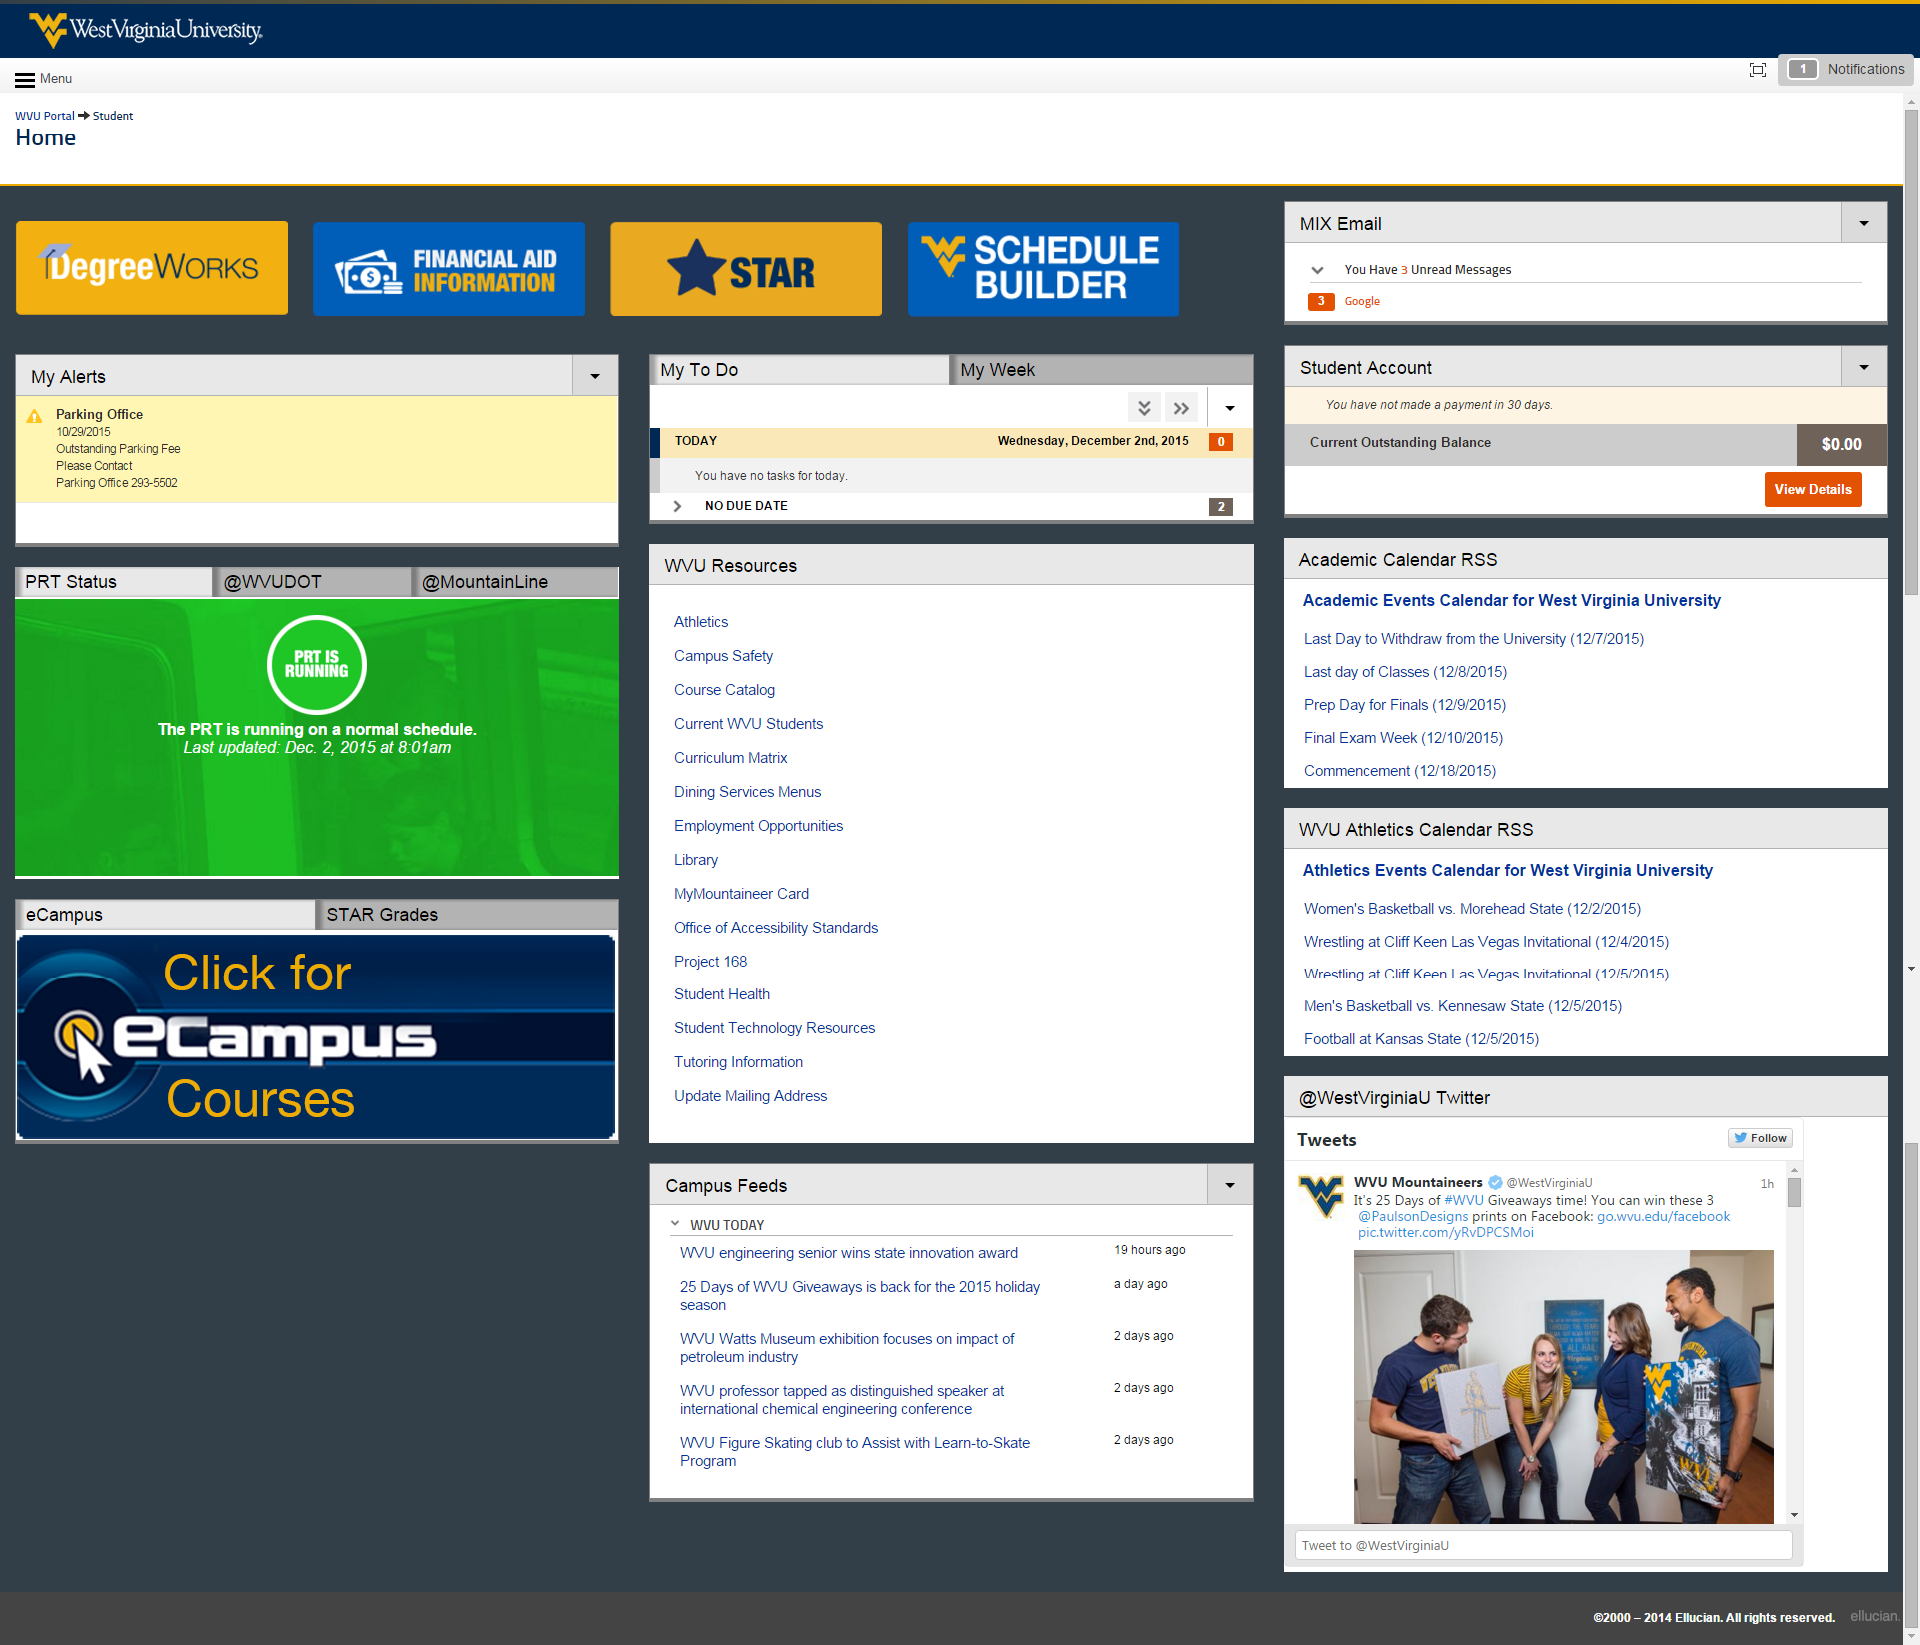 undergraduate, graduate, and professional view of the student portal